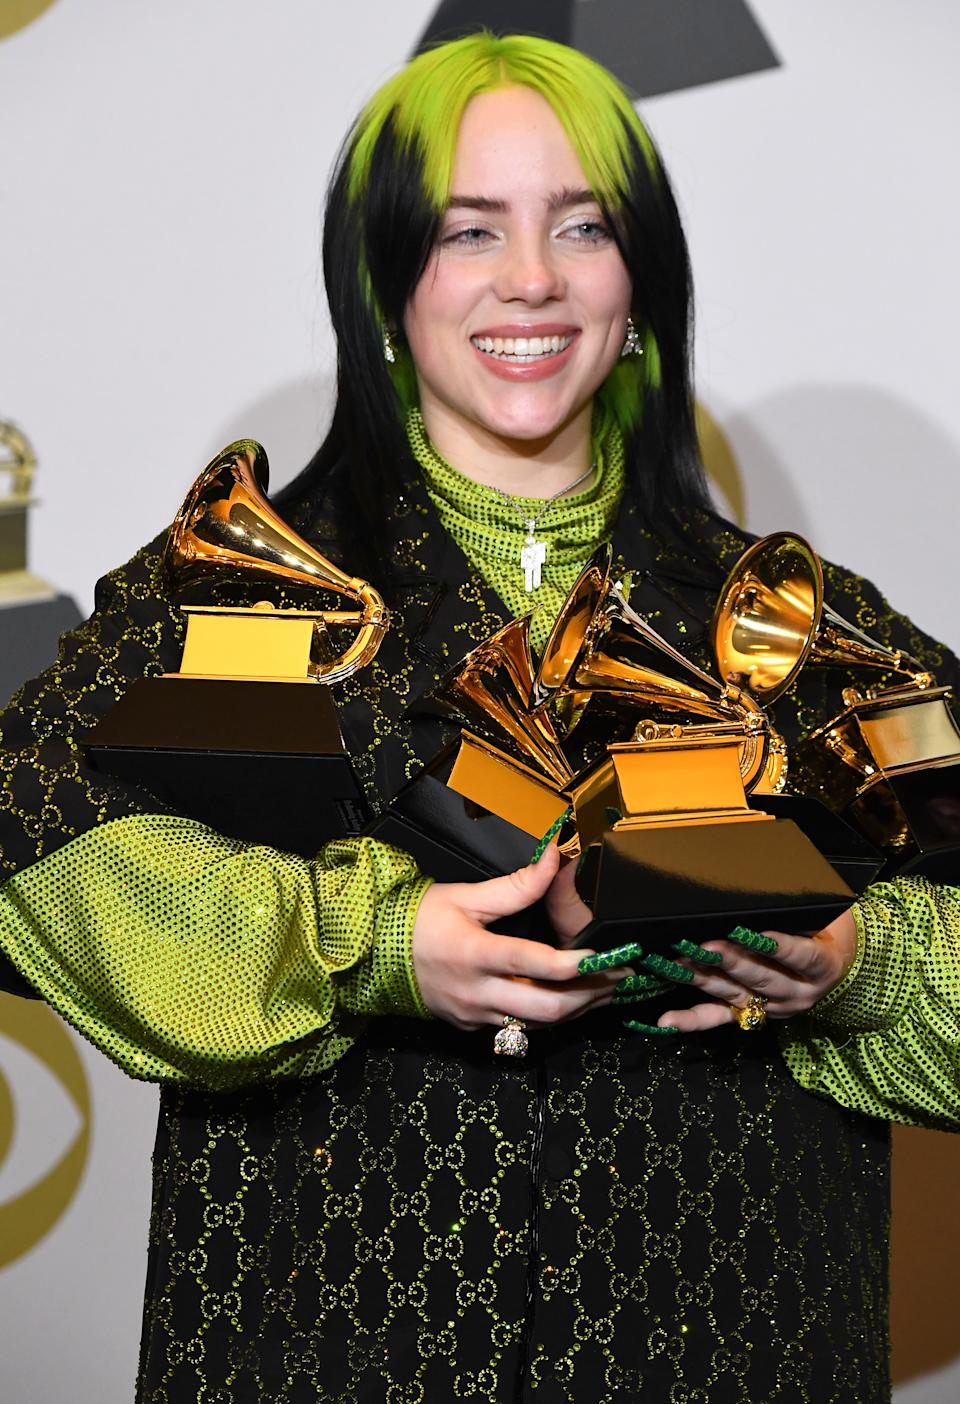 Billie Eilish poses at the 62nd Annual GRAMMY Awards at Staples Center on January 26, 2020 in Los Angeles, California. (Photo by Steve Granitz/WireImage)